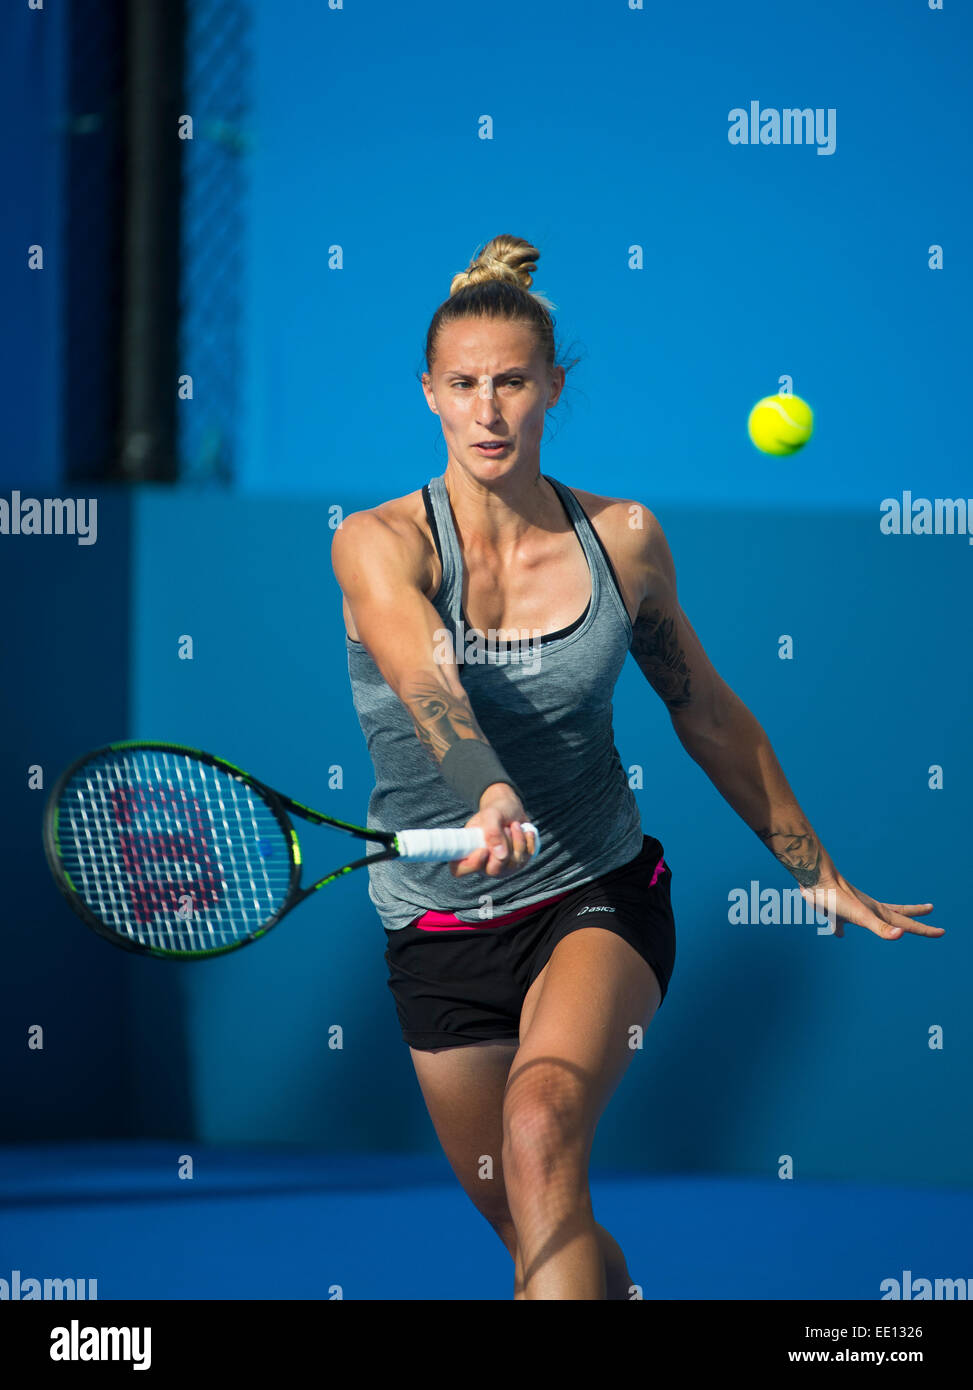 Sydney australia 12th jan 2015 polona hercog from slovenia playing her first